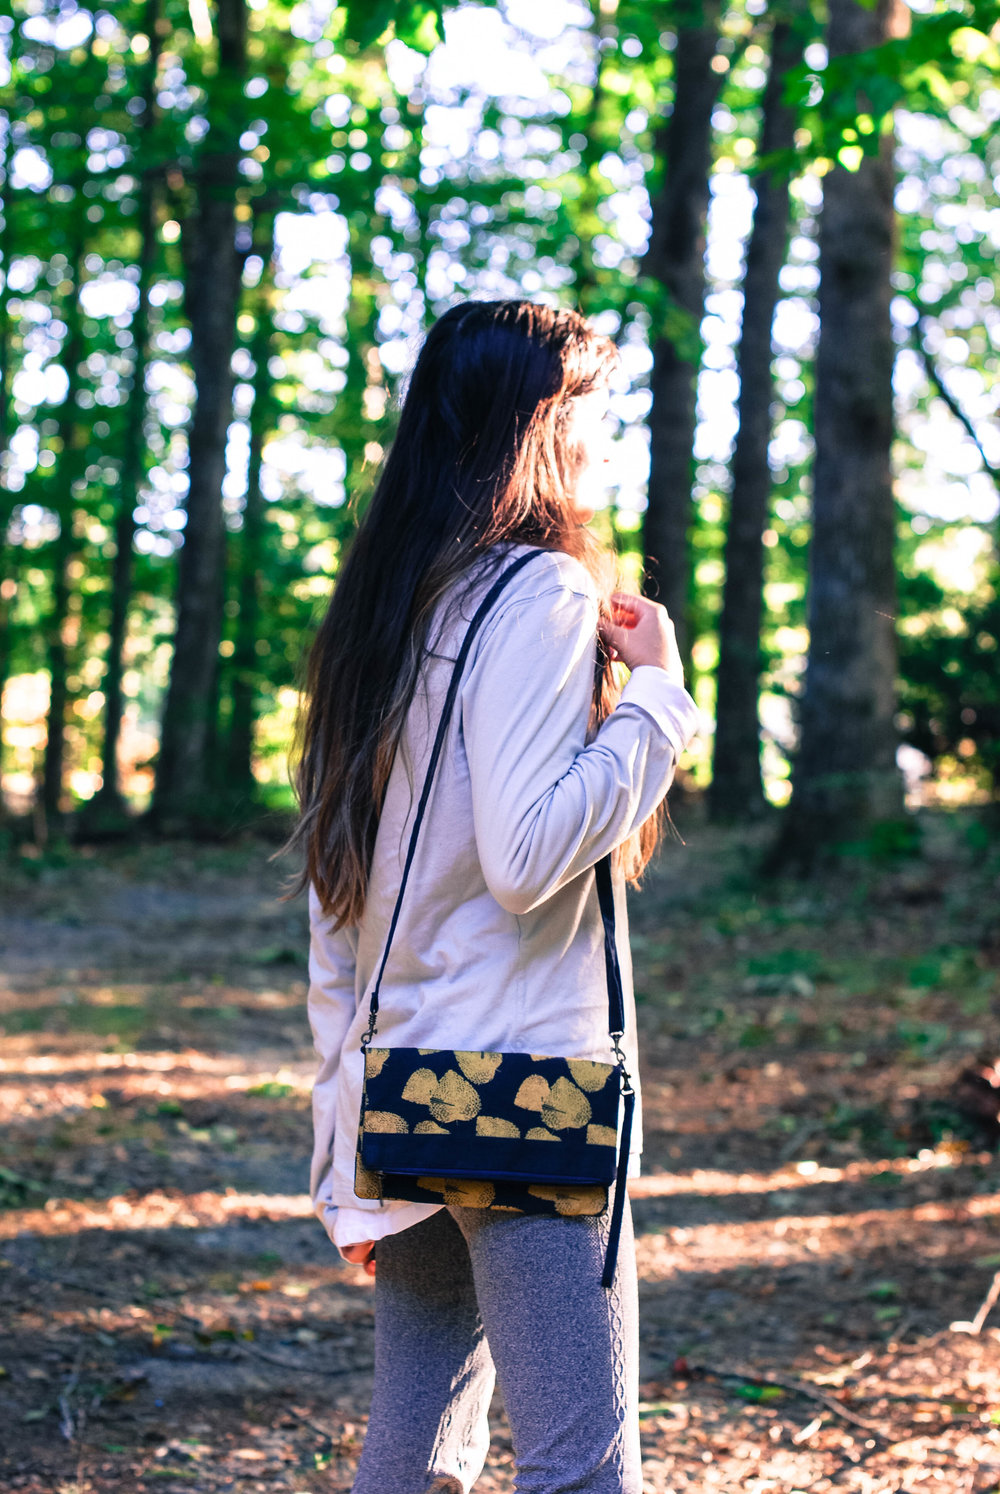 took the clutch on a little walk, too! {sweatshirt by  Saltura  / necklace in top photos by  Meridian Lee }